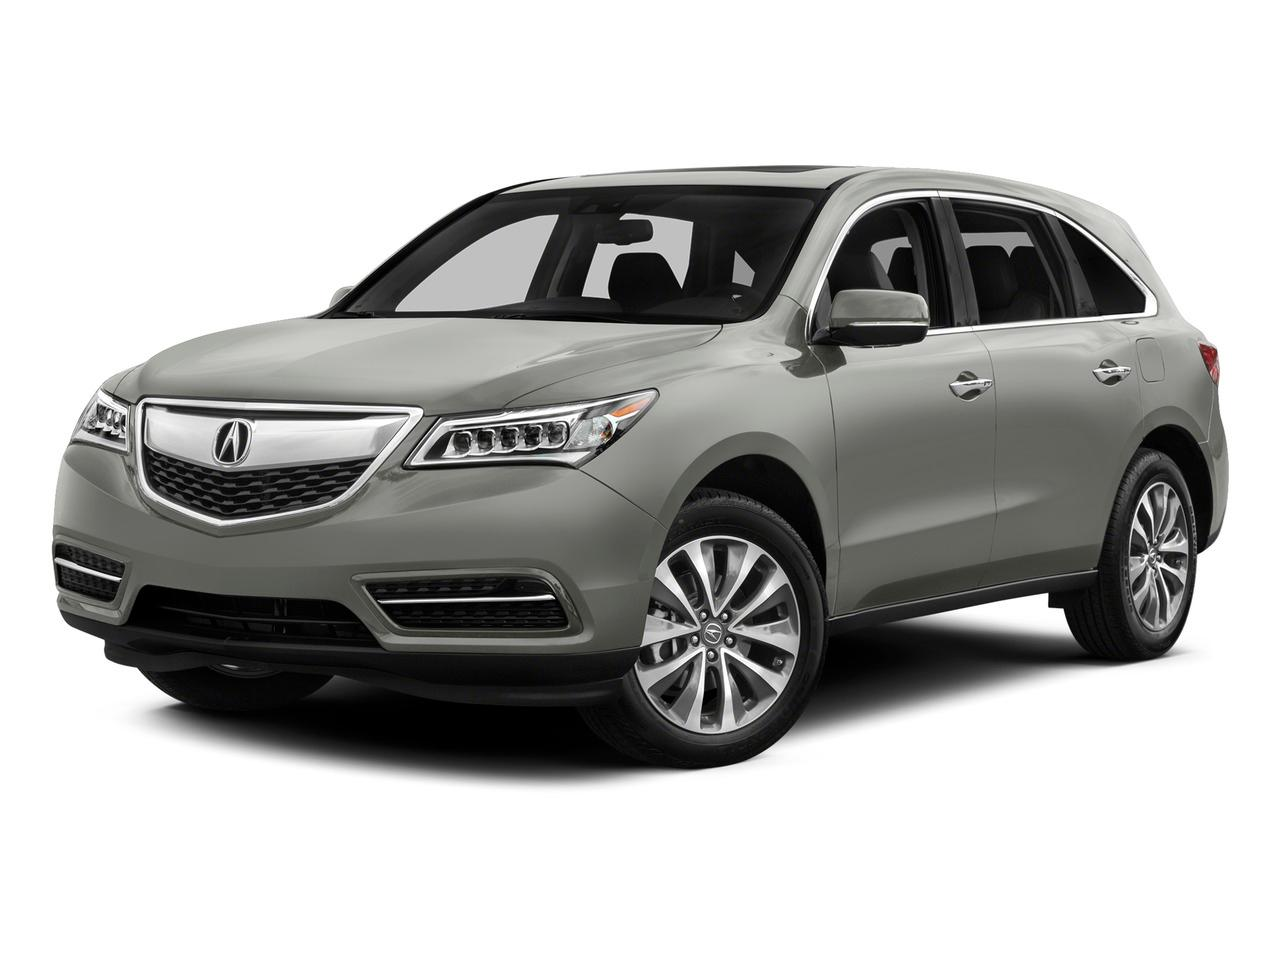 2015 Acura MDX Vehicle Photo in Pleasanton, CA 94588